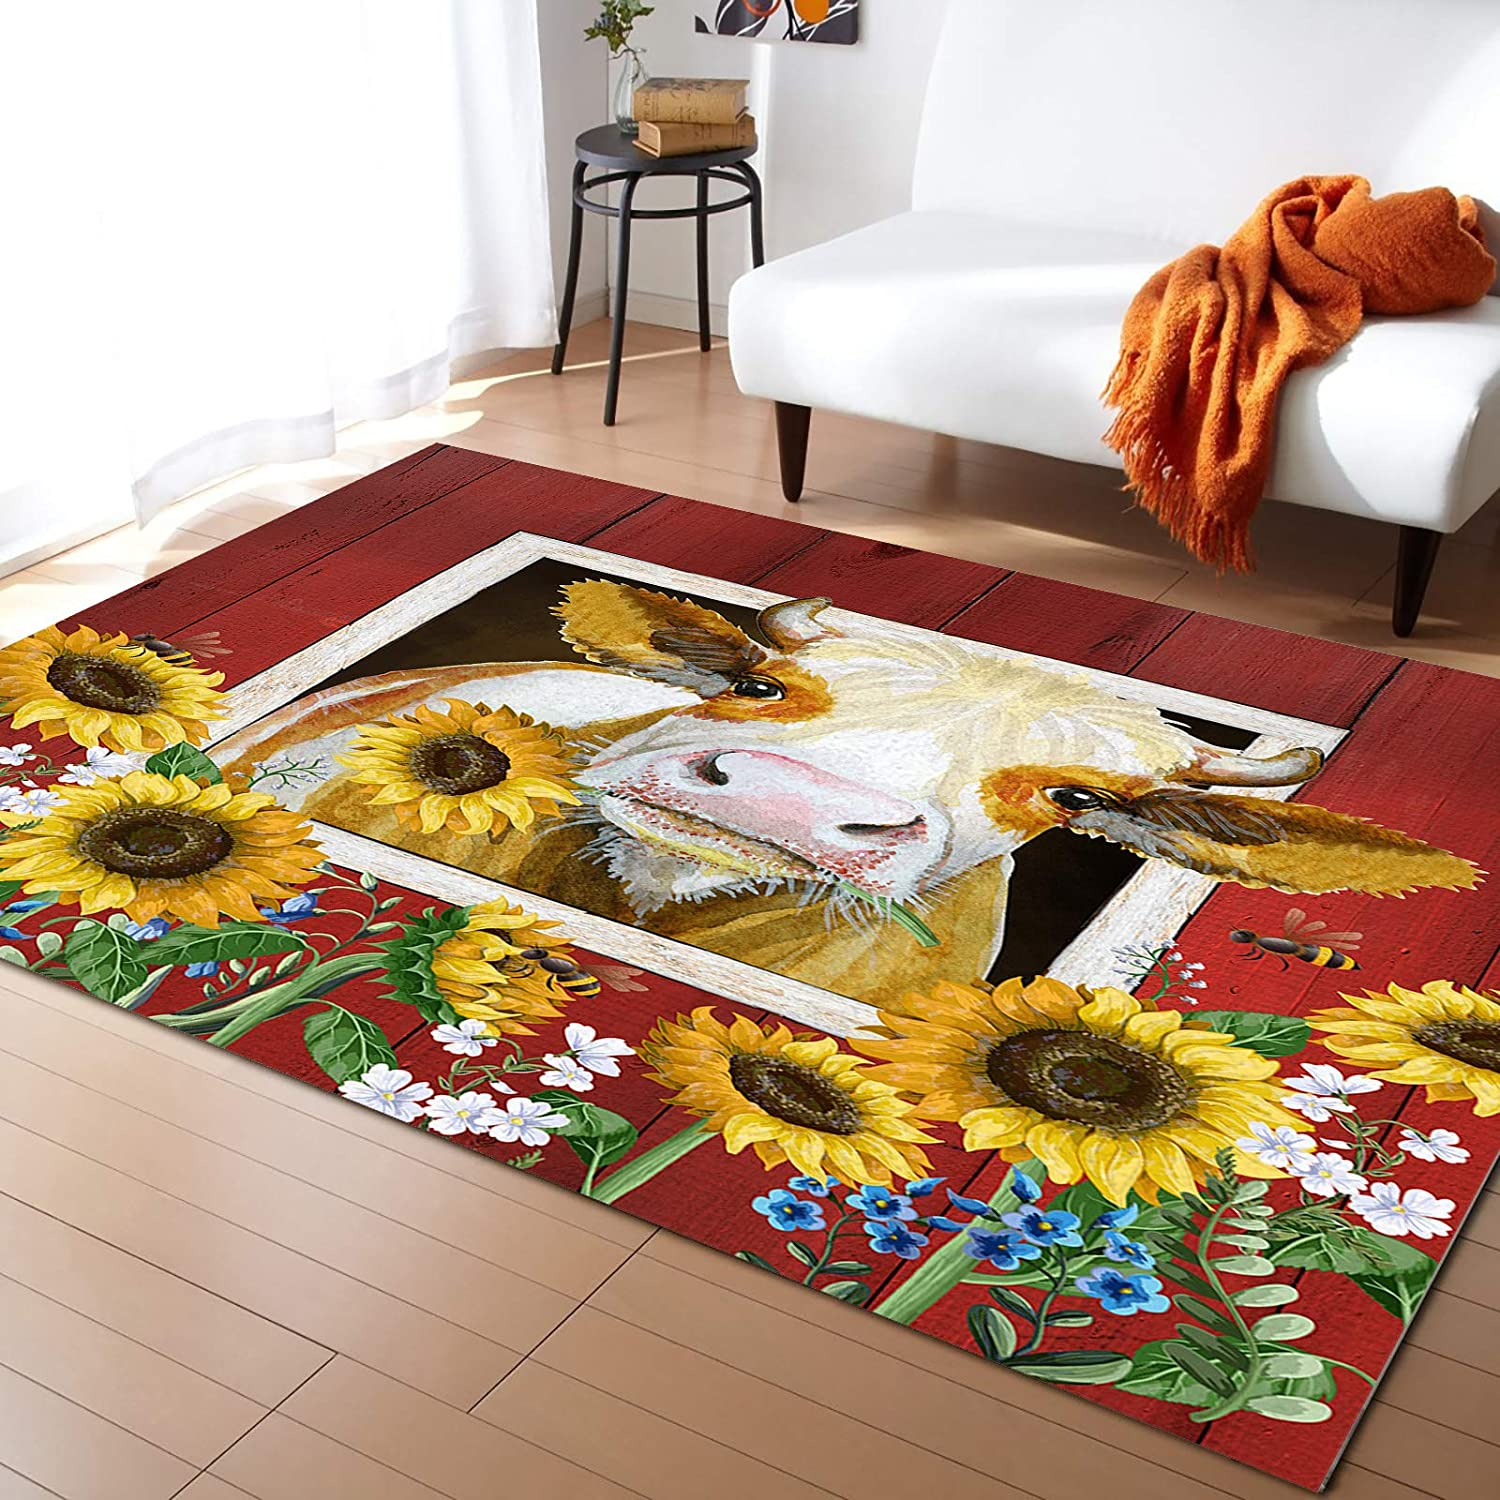 ARTSHOWING Farmhouse Area Rugs discount Max 73% OFF for Indoor Non-Slip Bedroom Outd